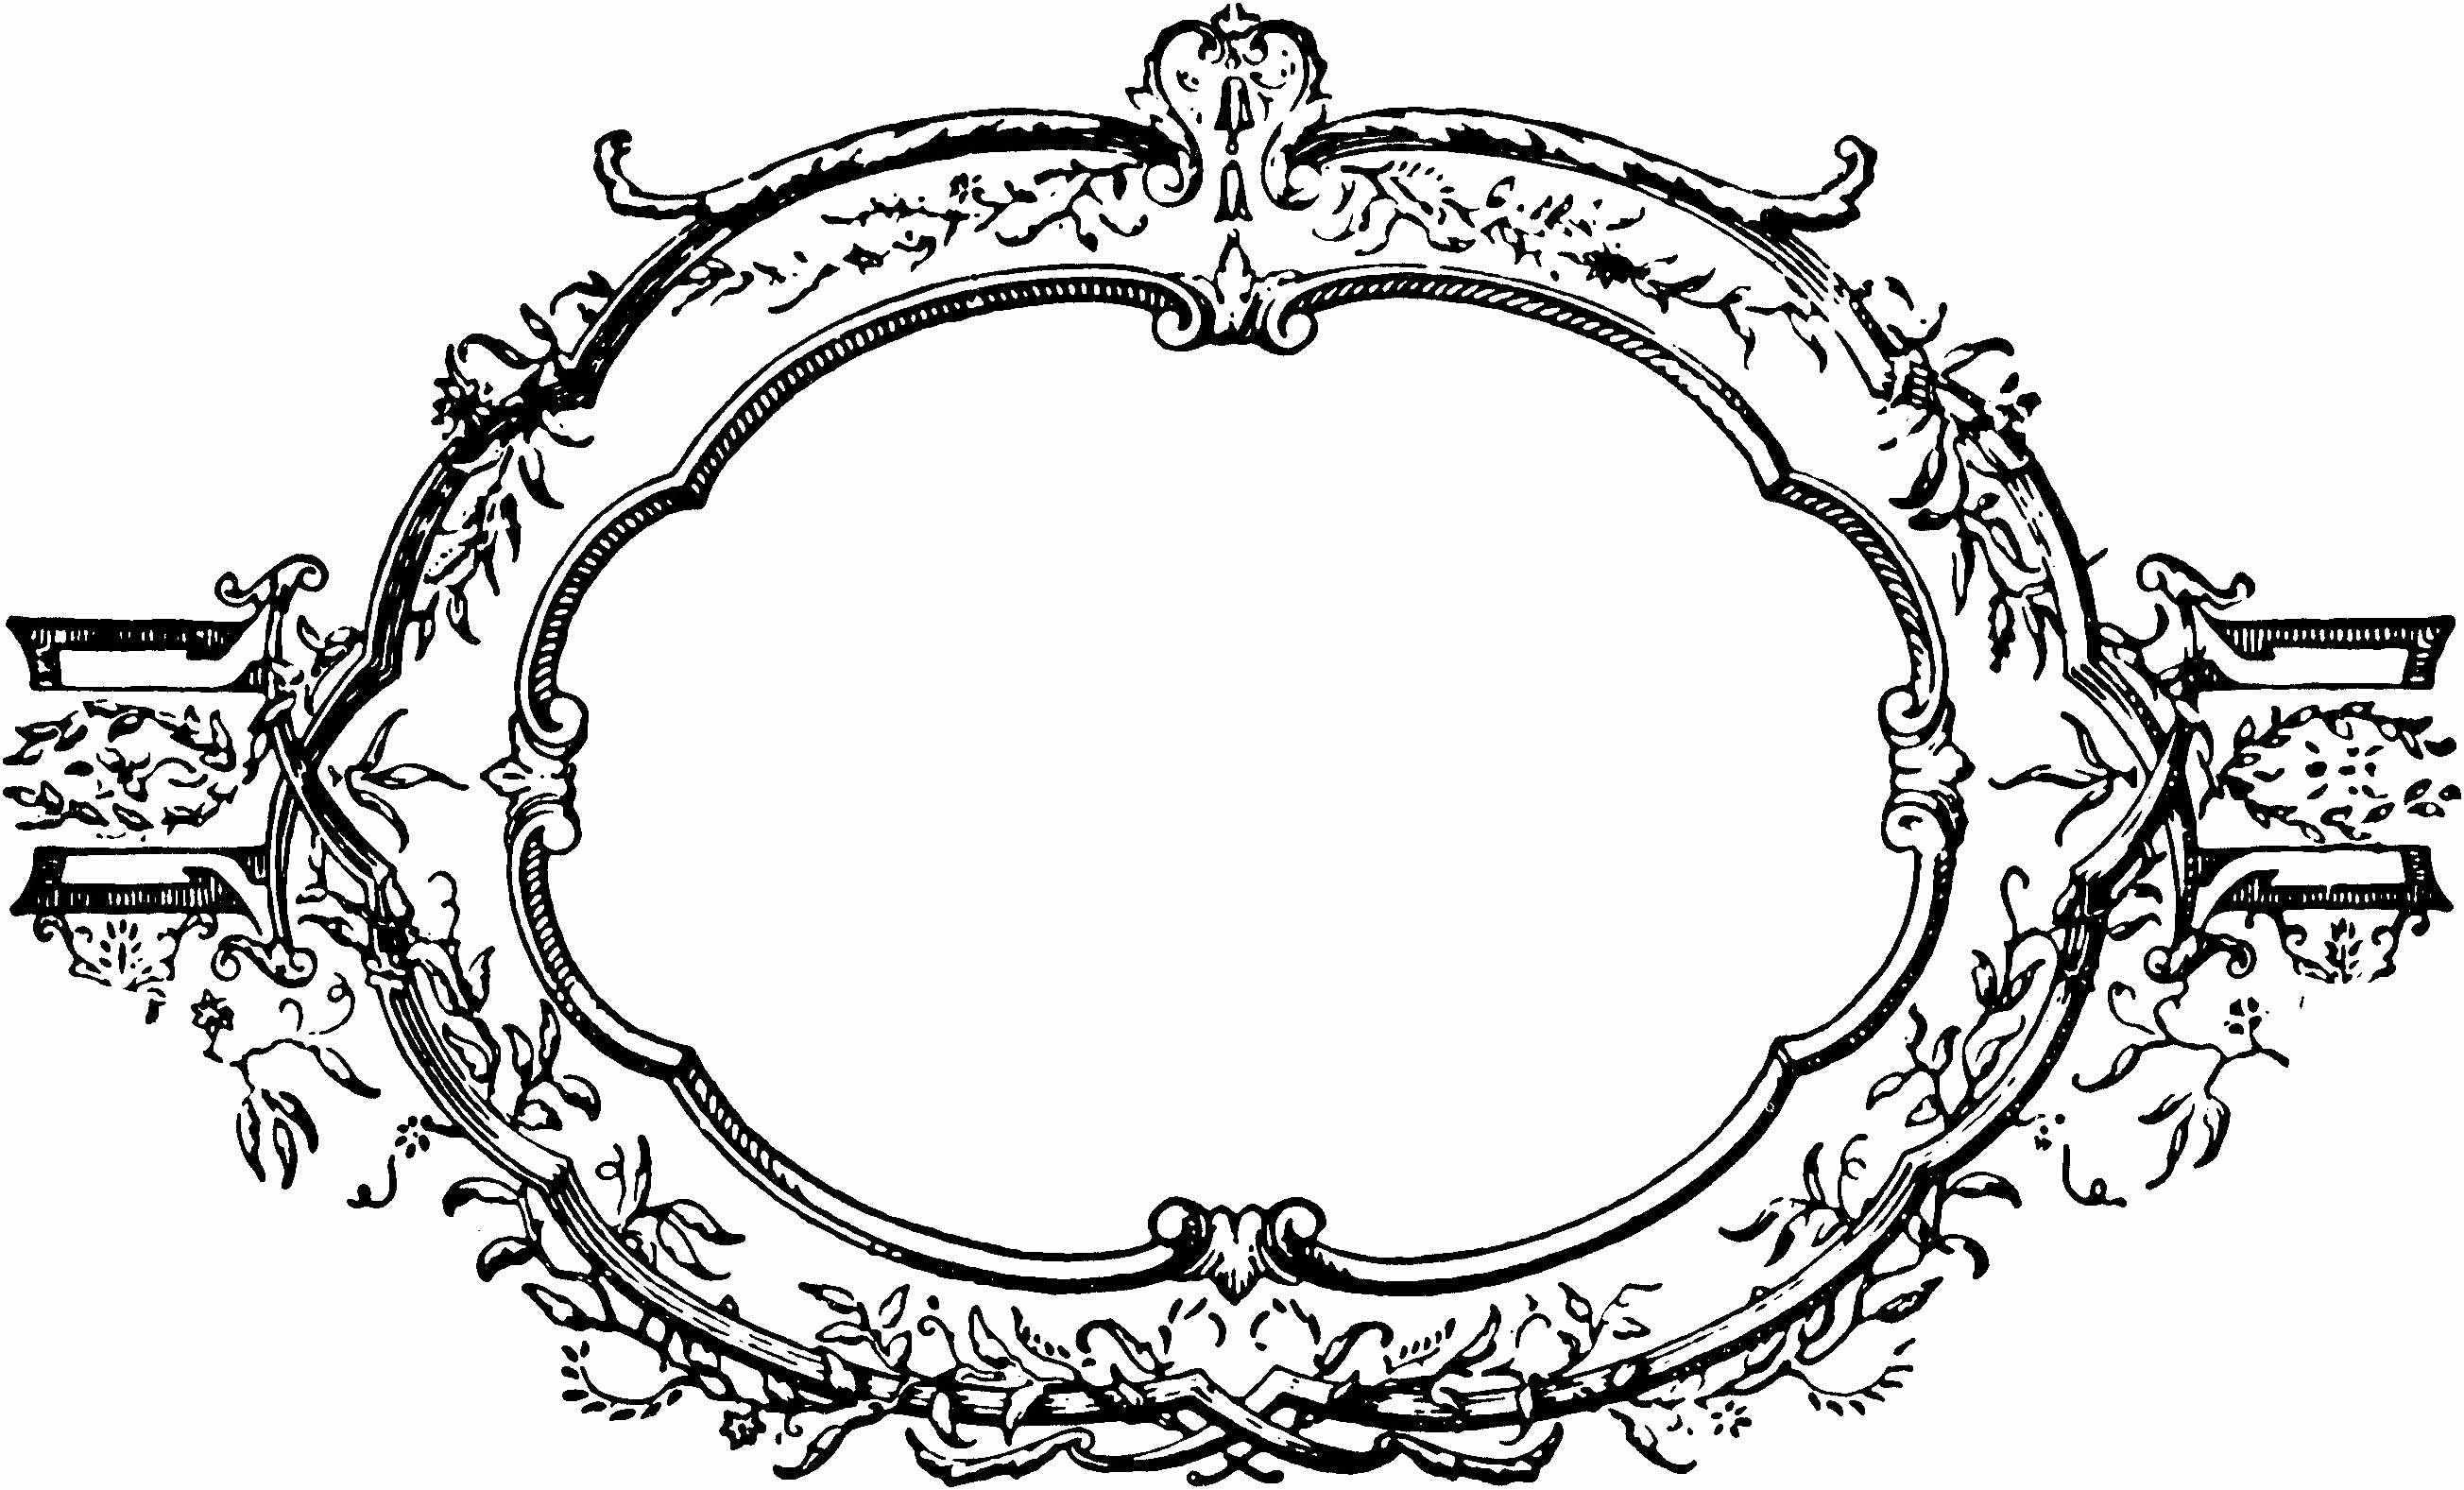 Vintage Decorative Frame & Laurel Wreath Clip Art